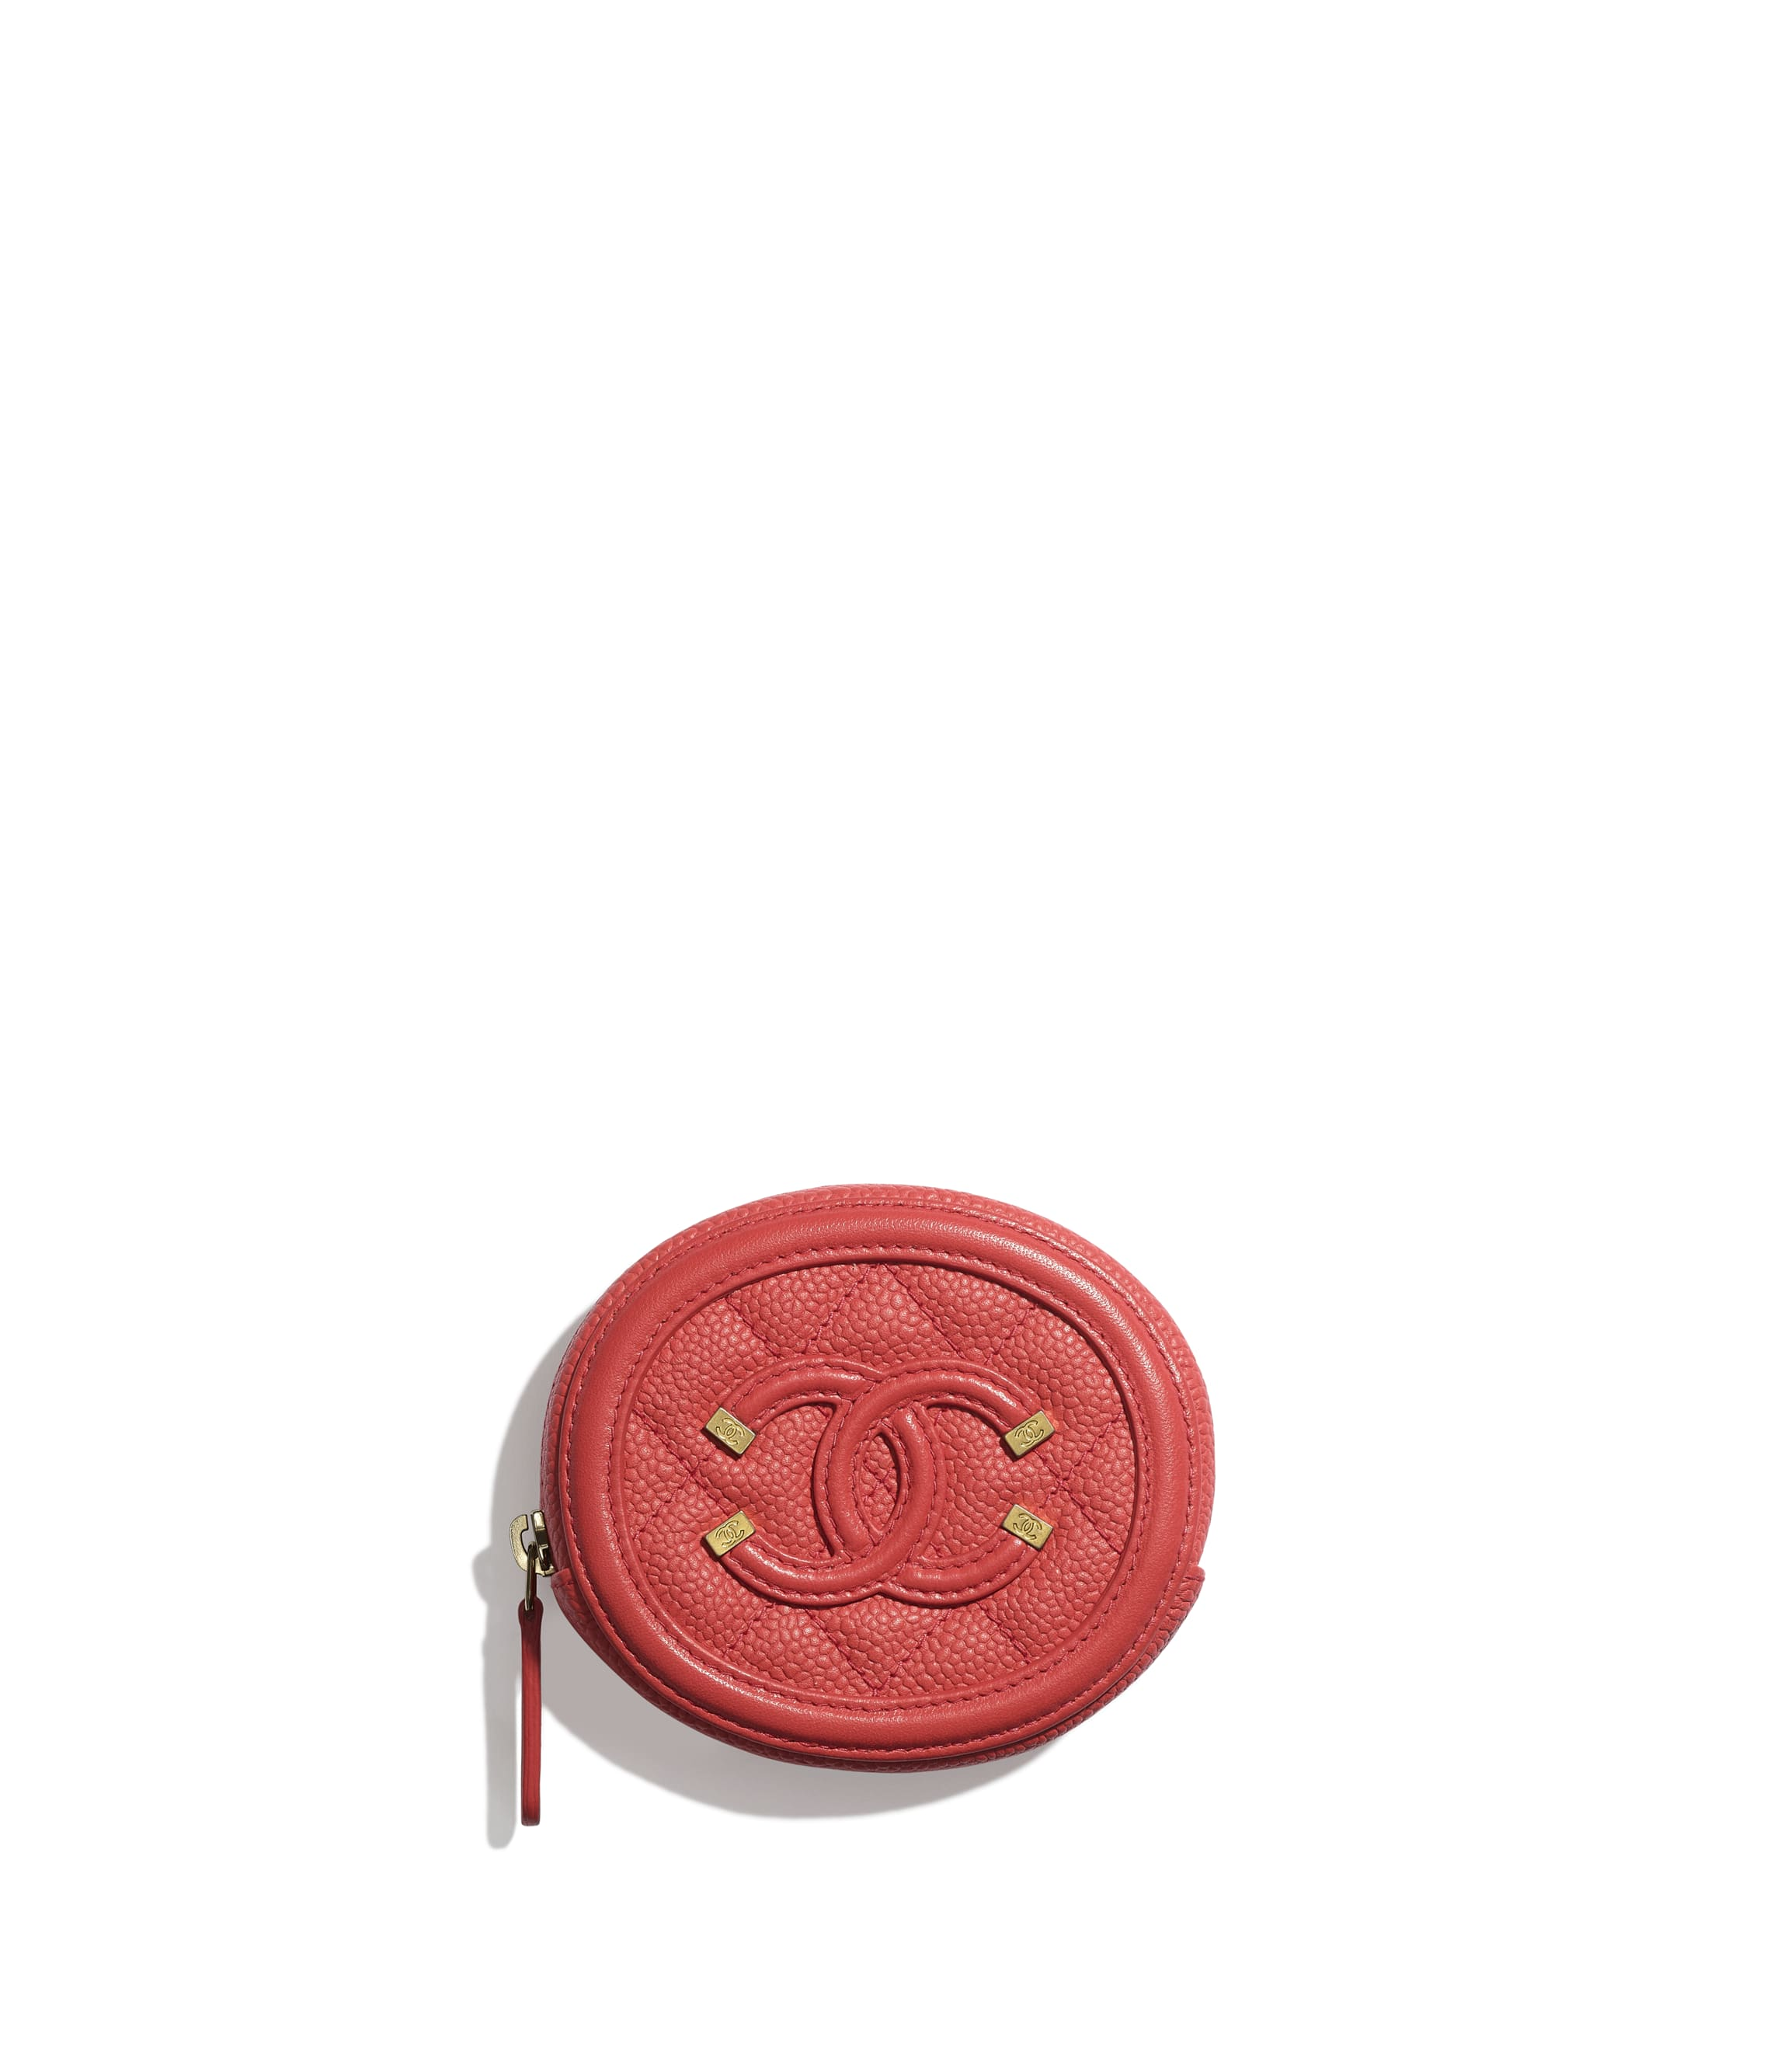 e1f1f3171118 Spring-Summer 2019 - Small leather goods - CHANEL